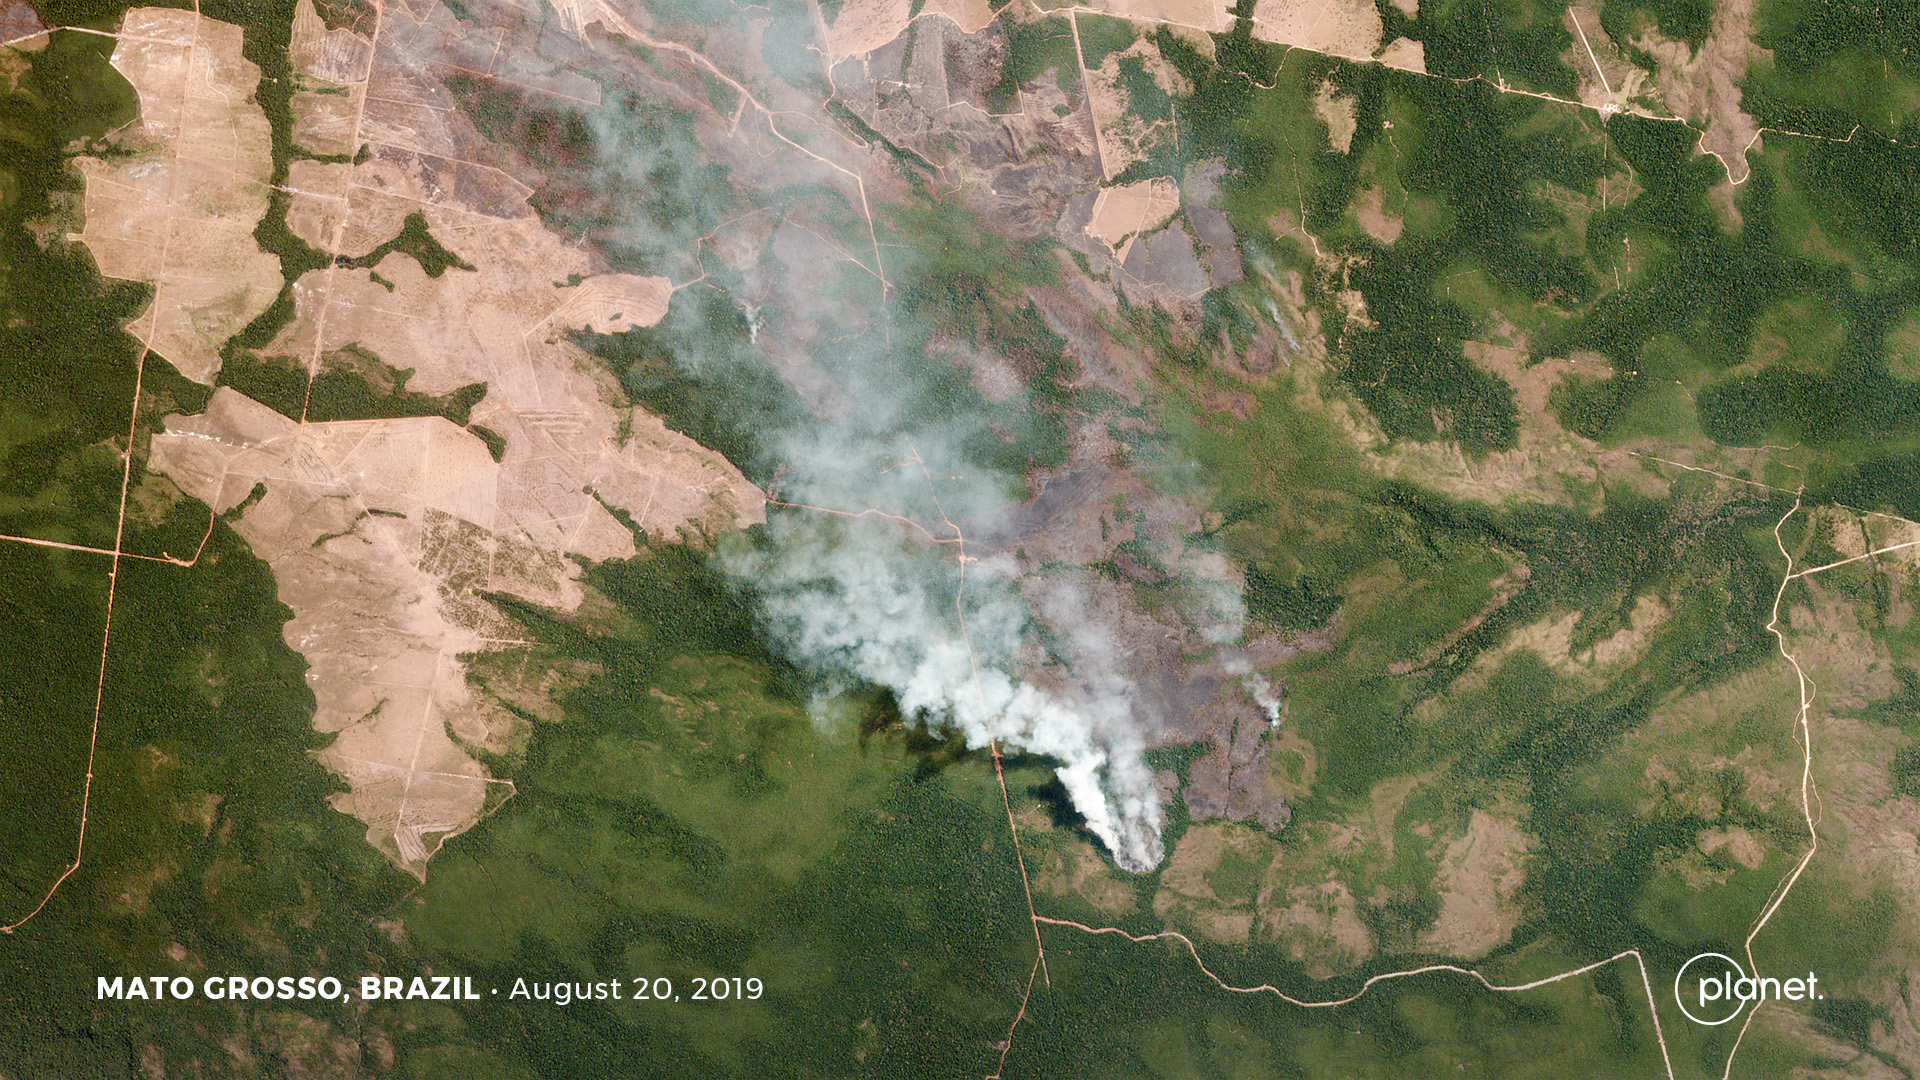 Satellite Images From Planet Reveal Devastating Amazon Fires In